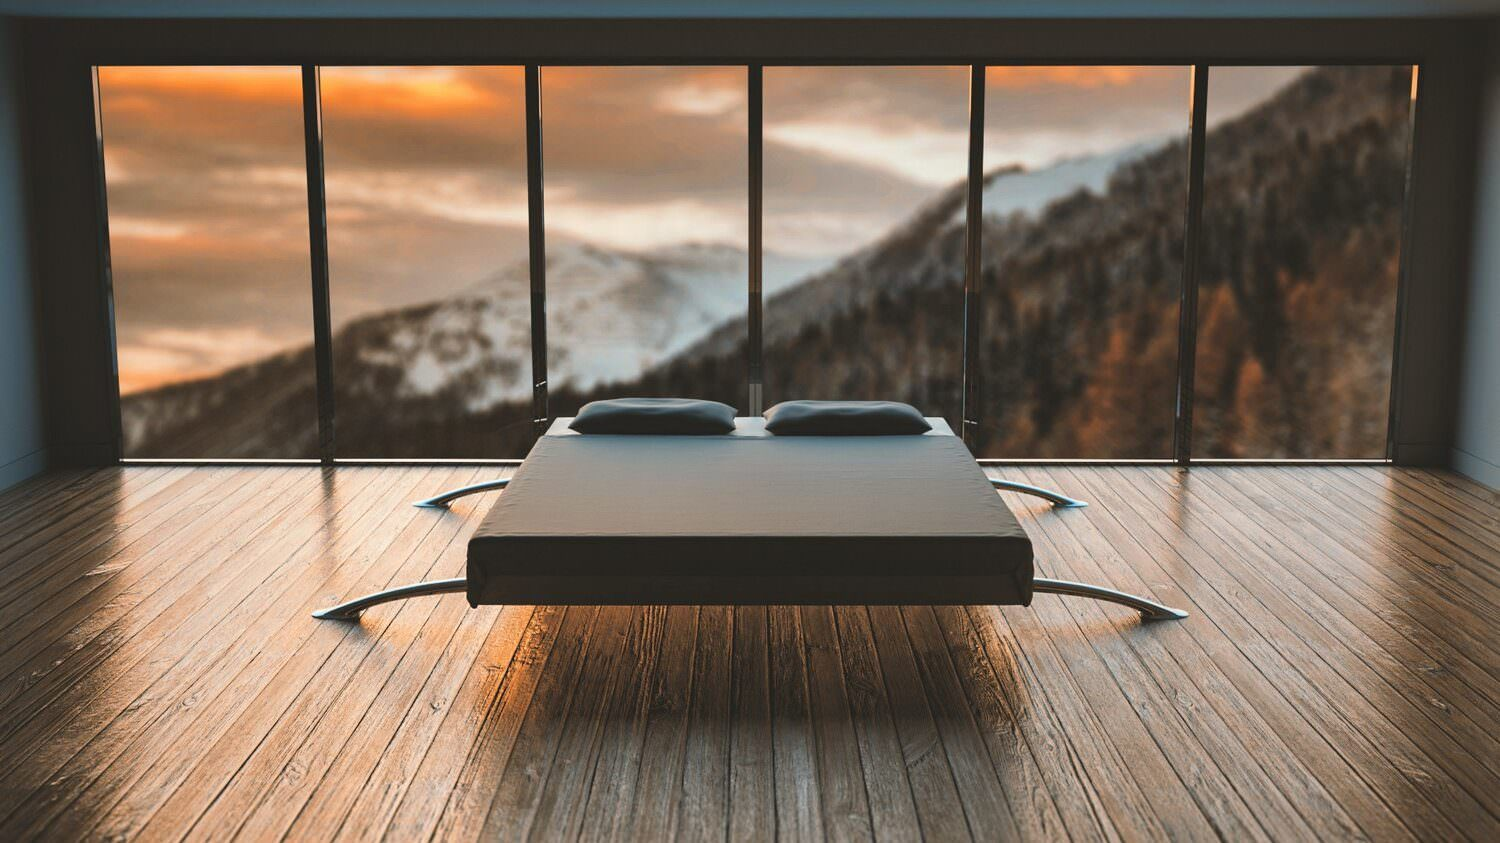 white-and-black-mattress-fronting-the-mountain-775219